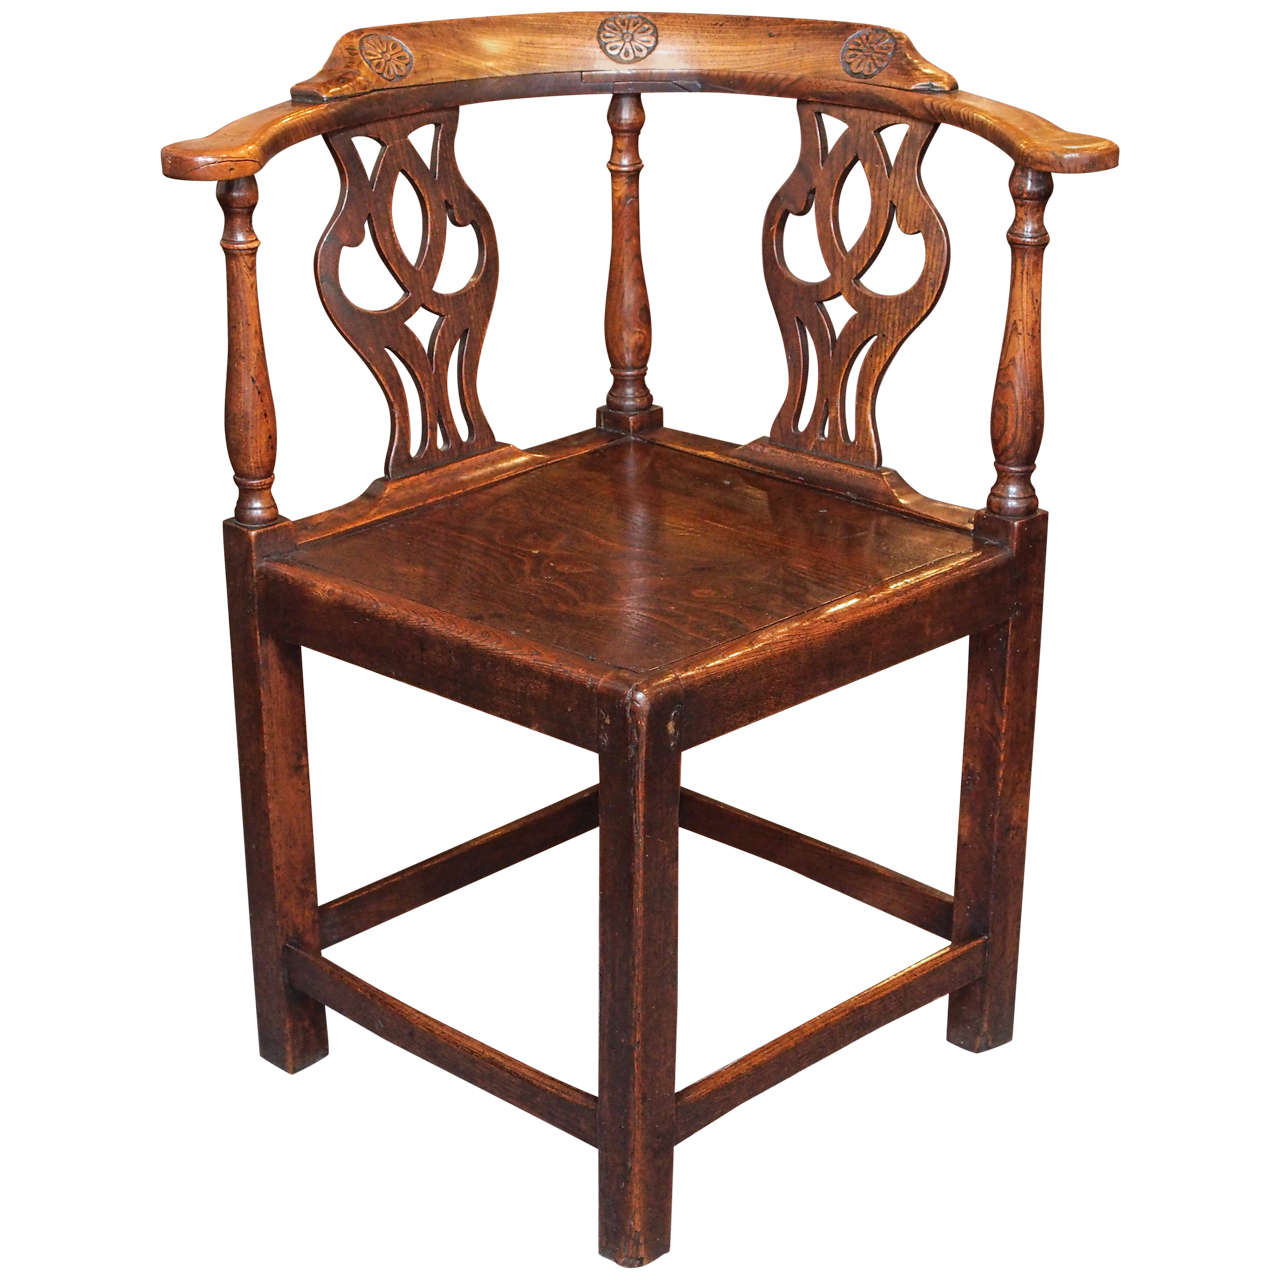 Antique Corner Chair - Antique Corner Chair Antique Furniture